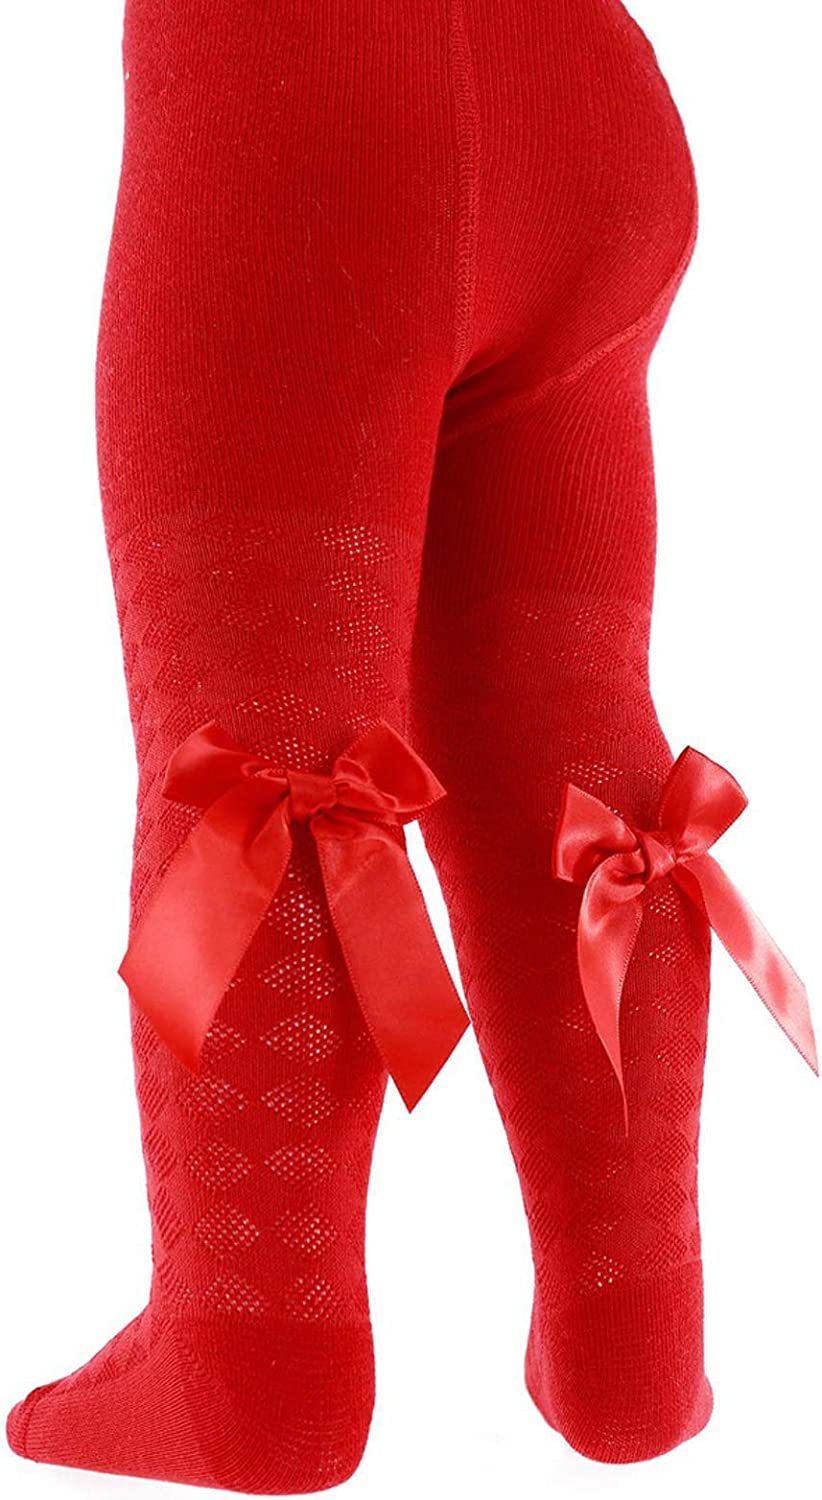 Baby Girls Tights Heart Print With Ribbon Bow Stockings Pom Pom Rich Cotton Leggings Newborn//24 Months